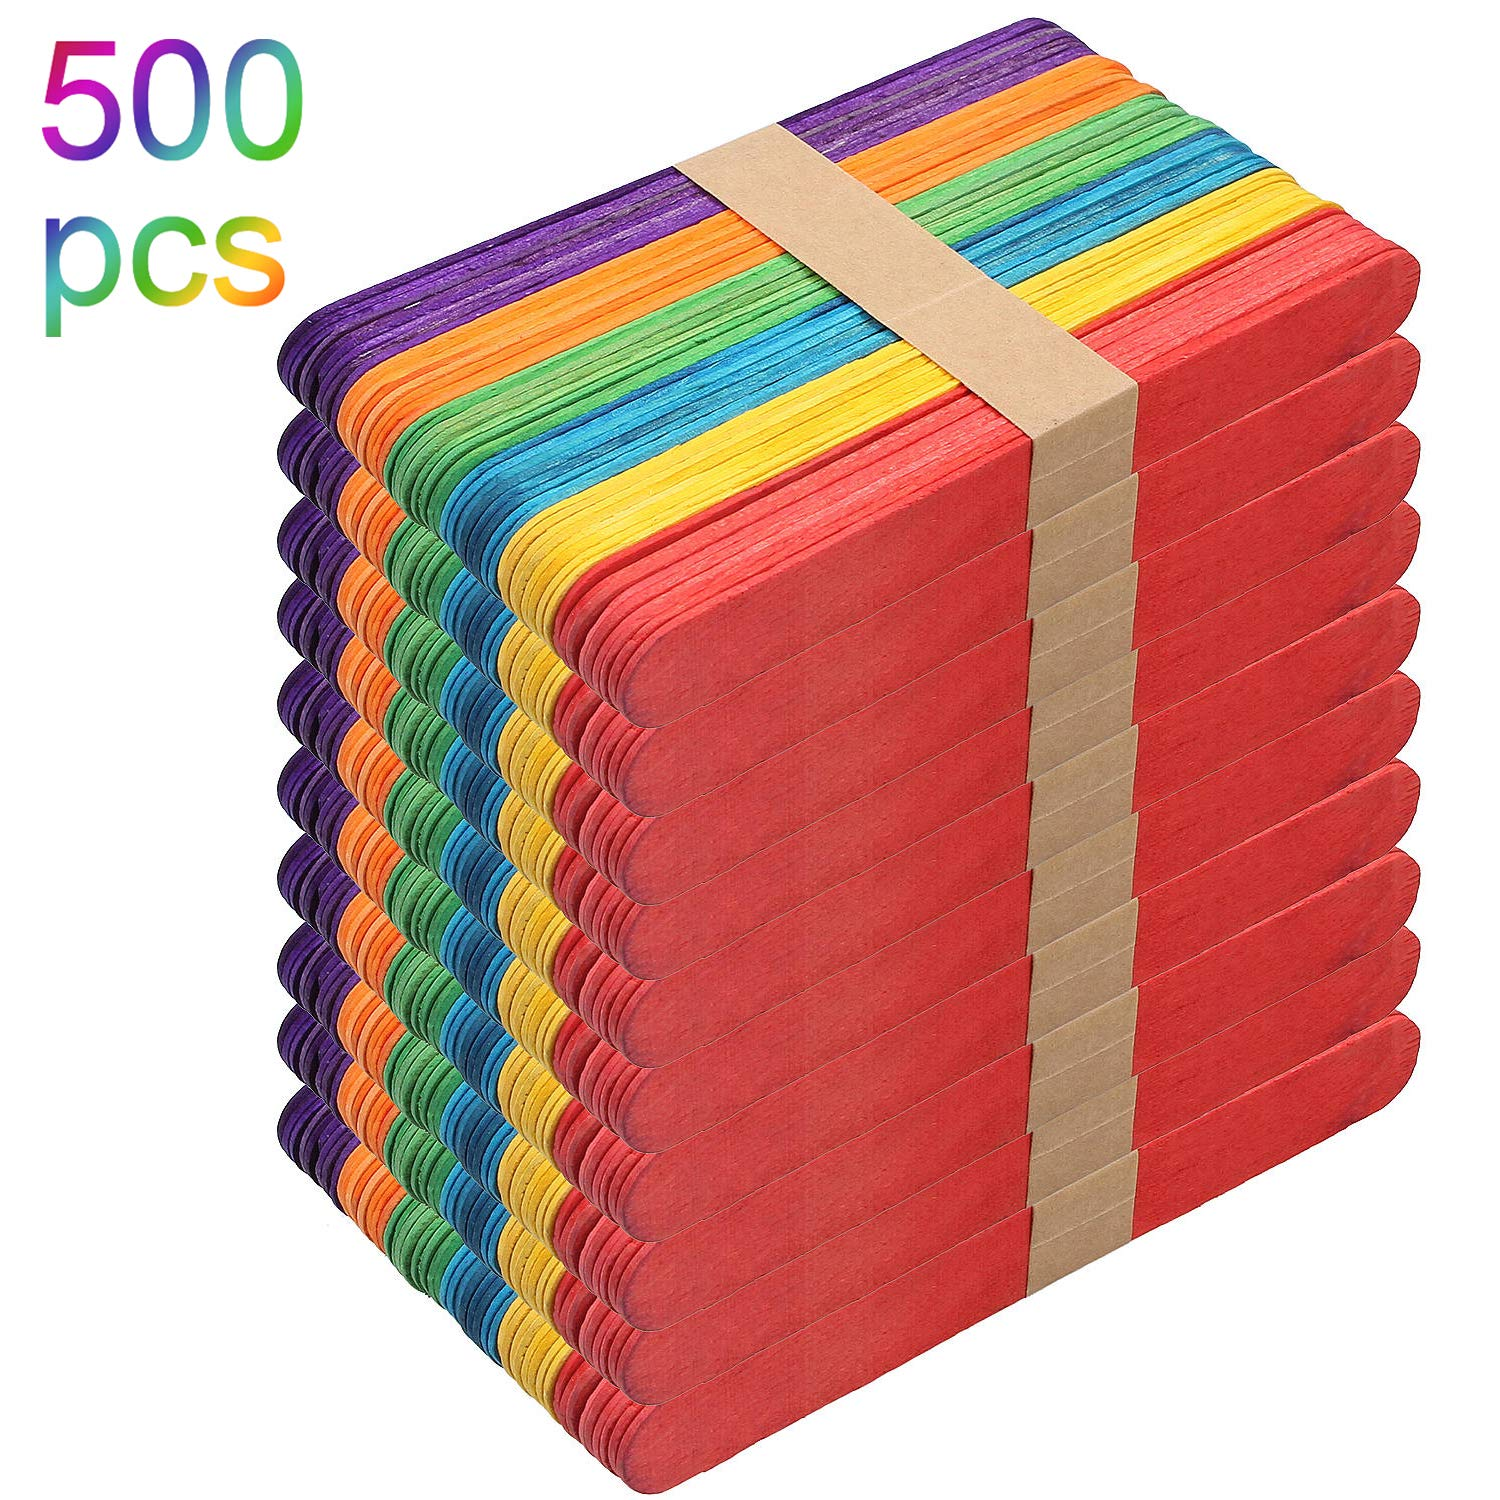 500 Pack Colored Craft Sticks Wooden Popsicle Sticks 6''x0.7'', CBTONE Bright Vibrant Jumbo Wood Sticks Mixed Colors for DIY Craft Creative Designs or Children Education